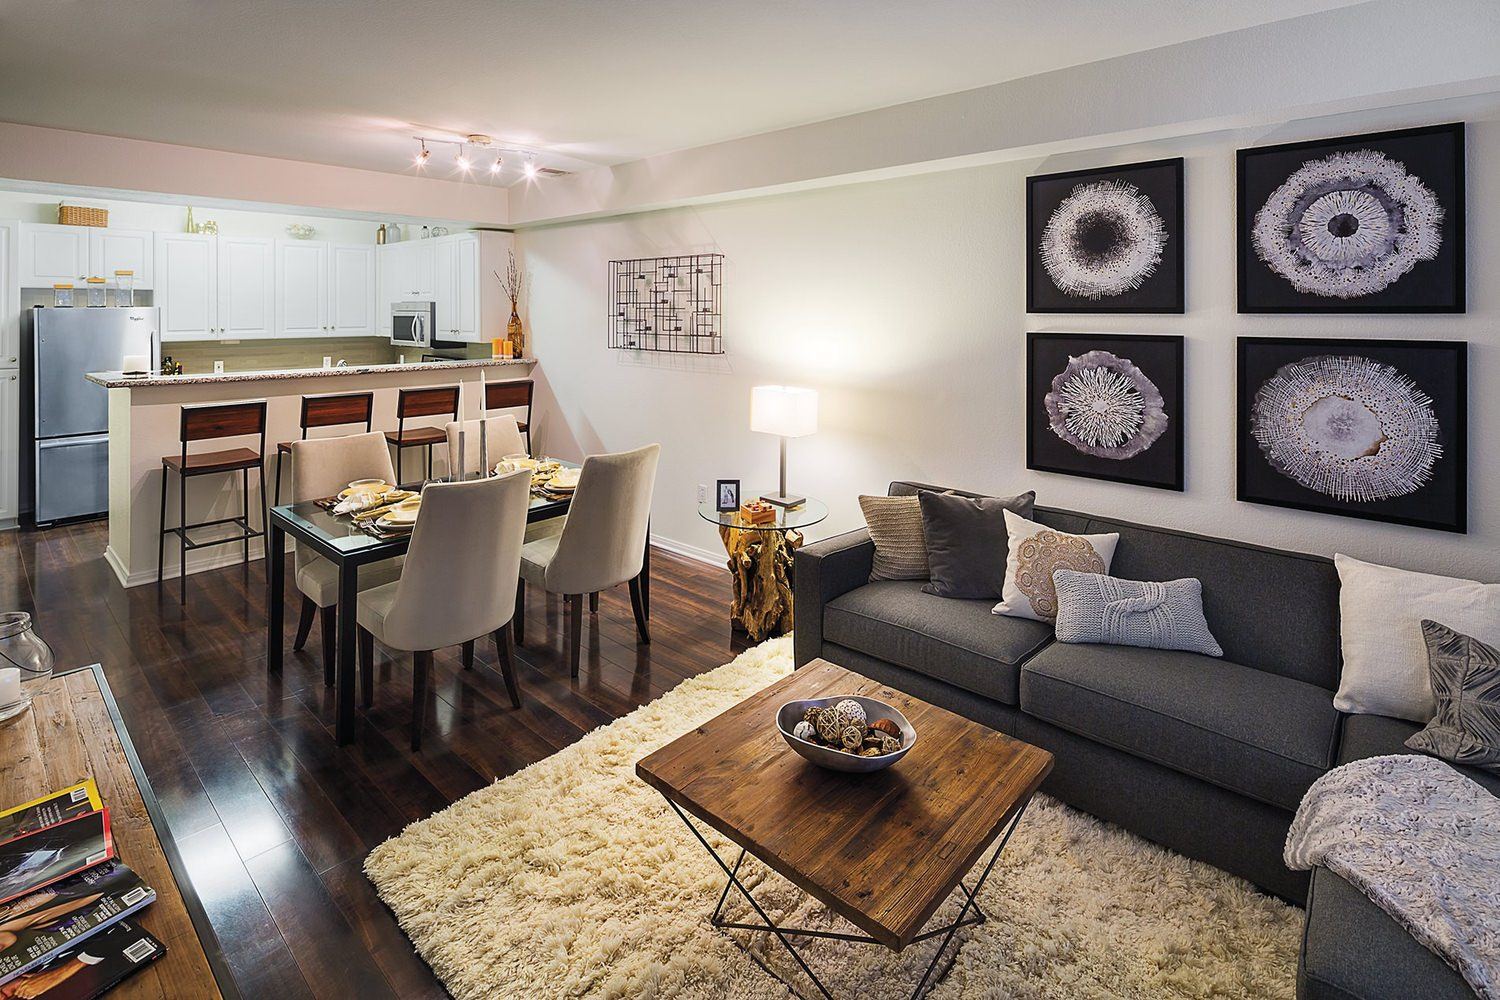 A kitchen and living room area that is full of furniture like sofas and tables.